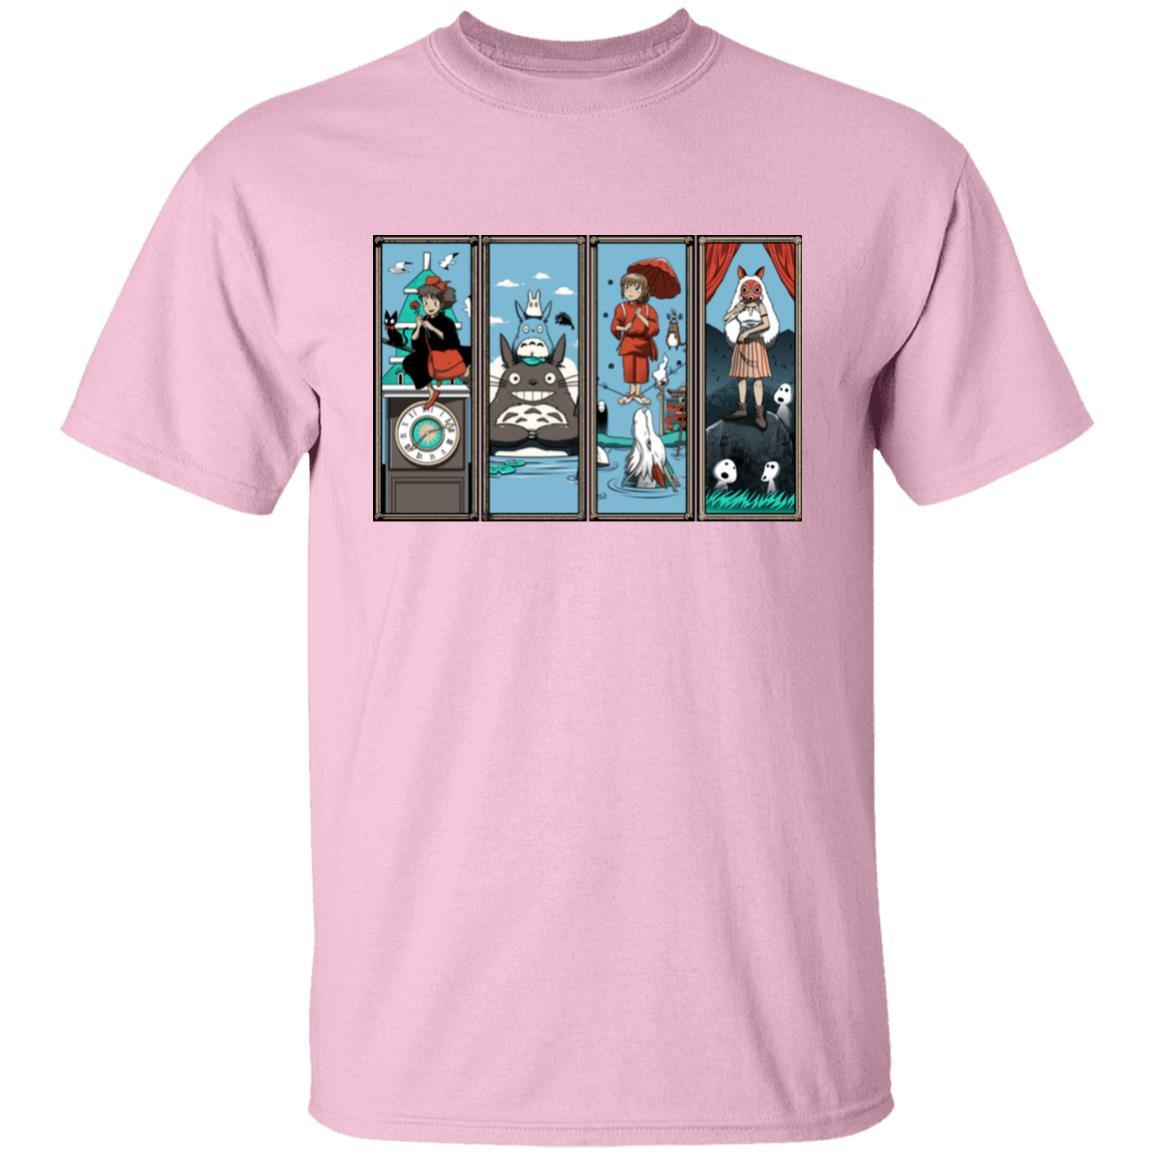 Ghibli Most Famous Movies Collection T Shirt